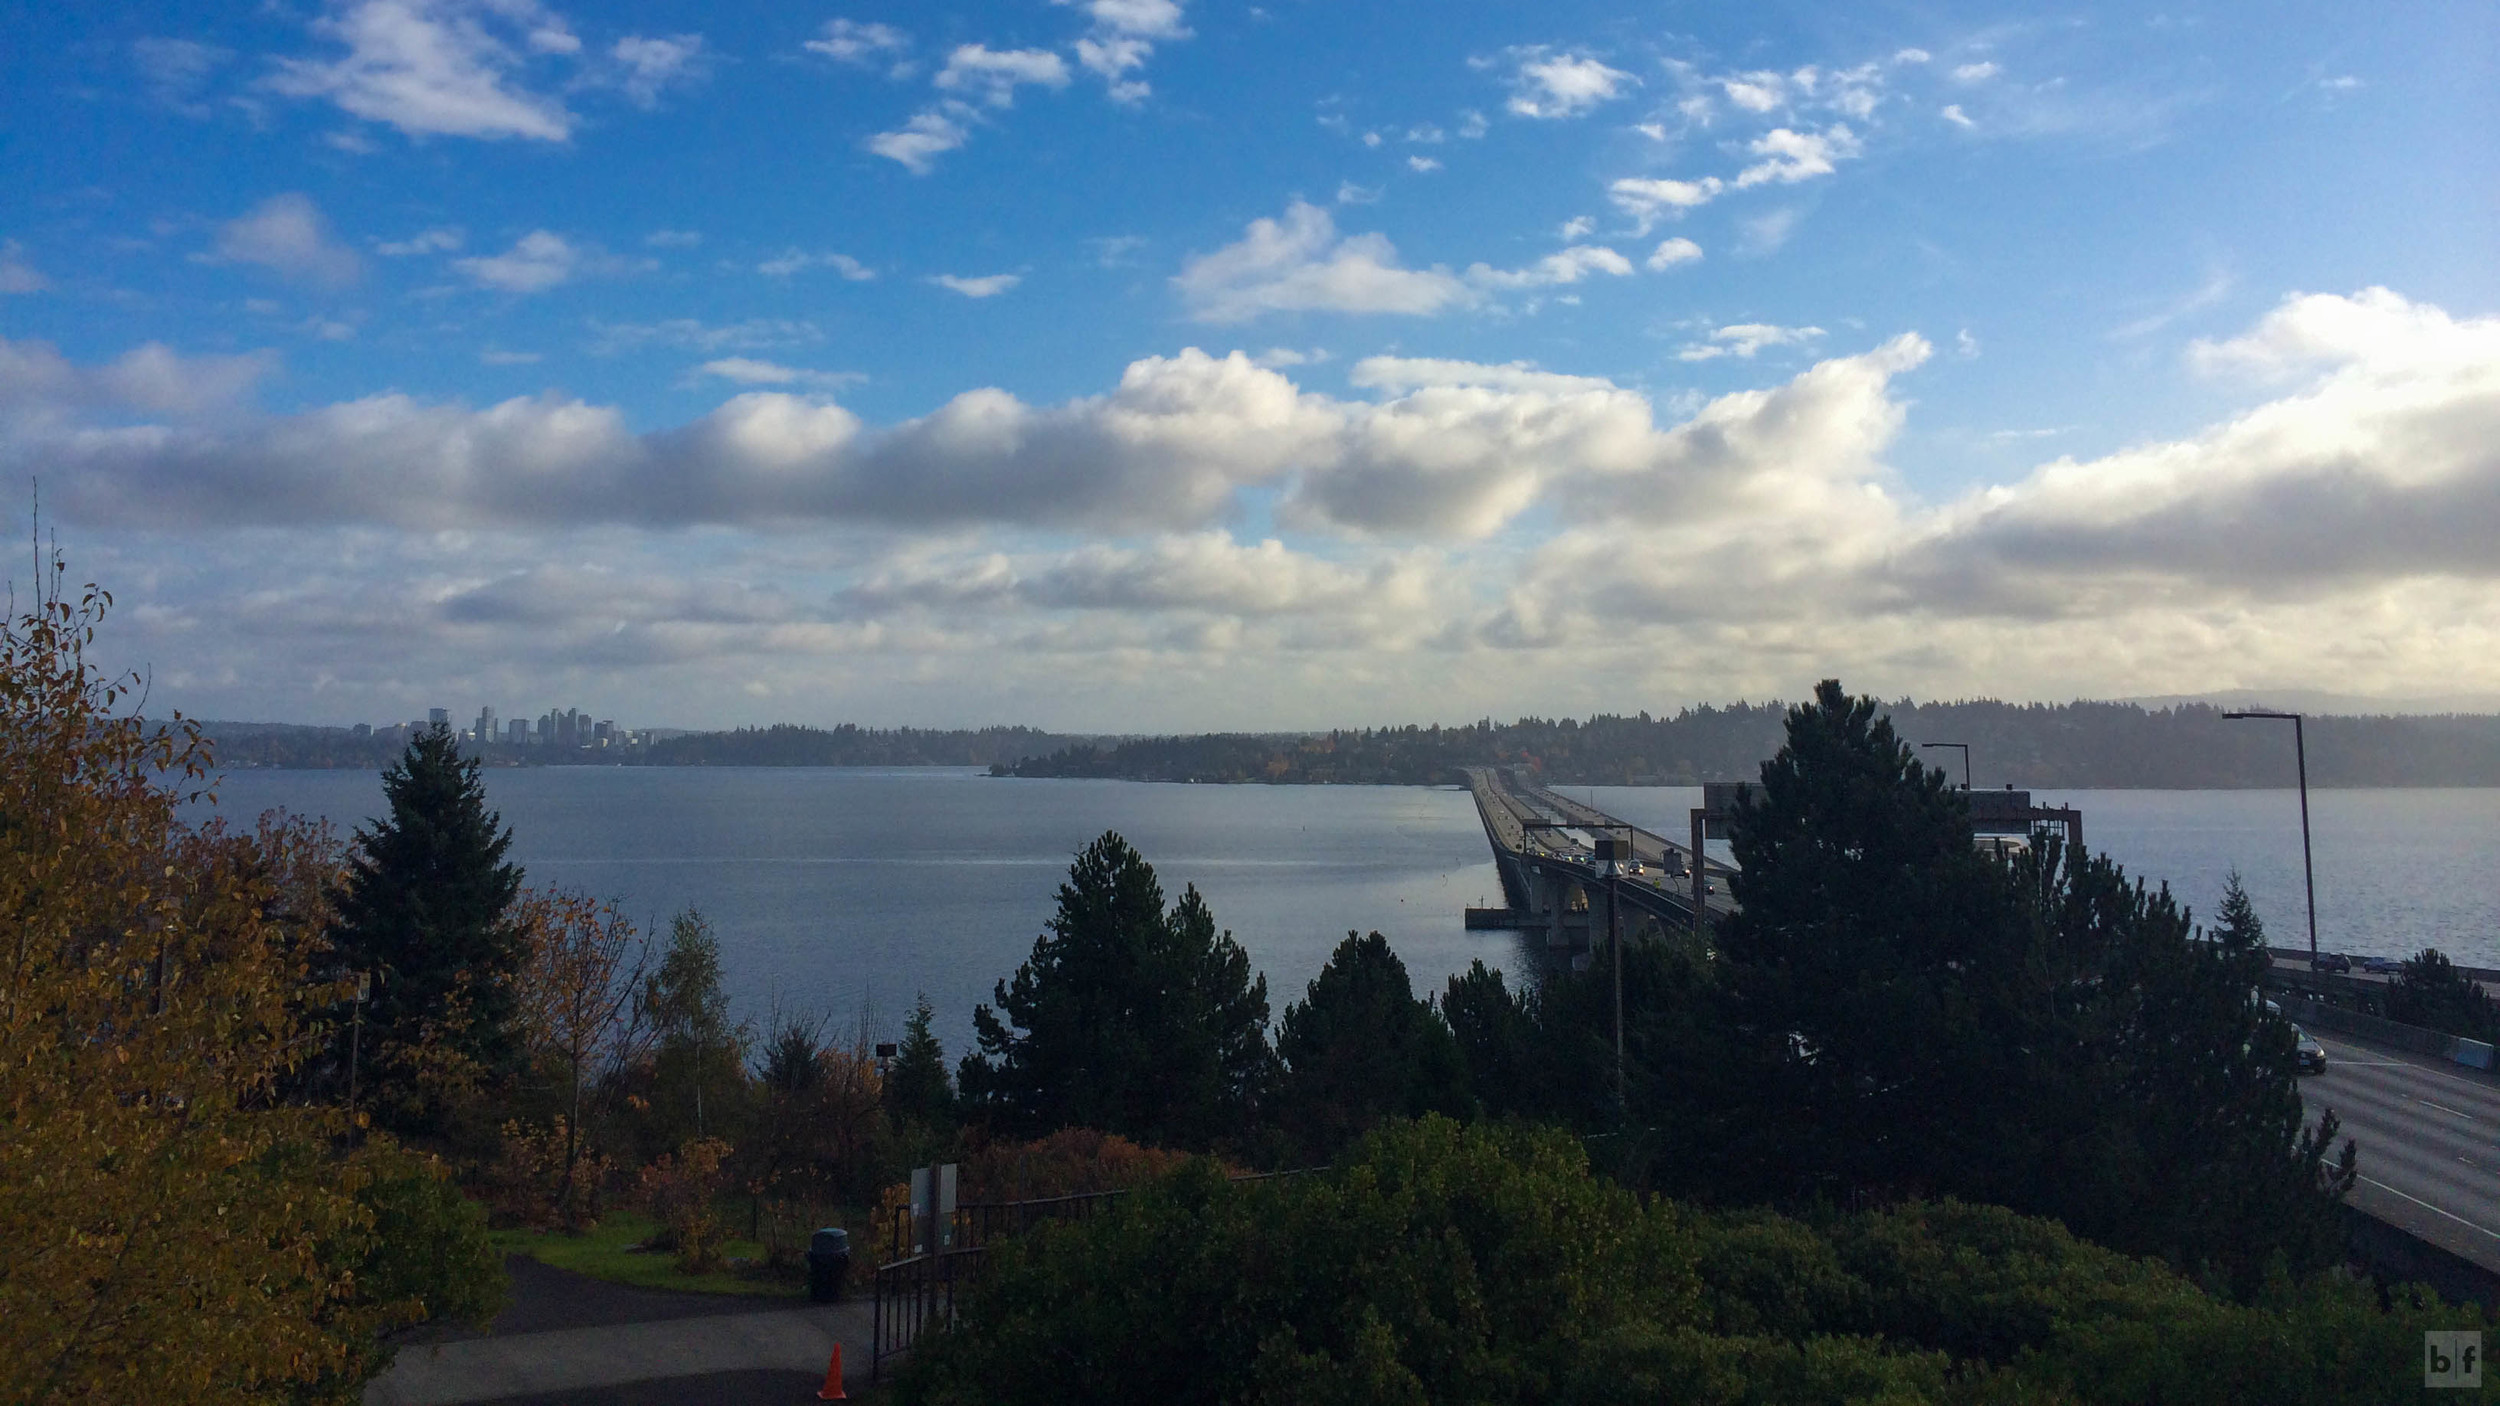 looking back towards Bellevue on the Seattle side of the I-90 bridge. Quite a different picture from Saturday.